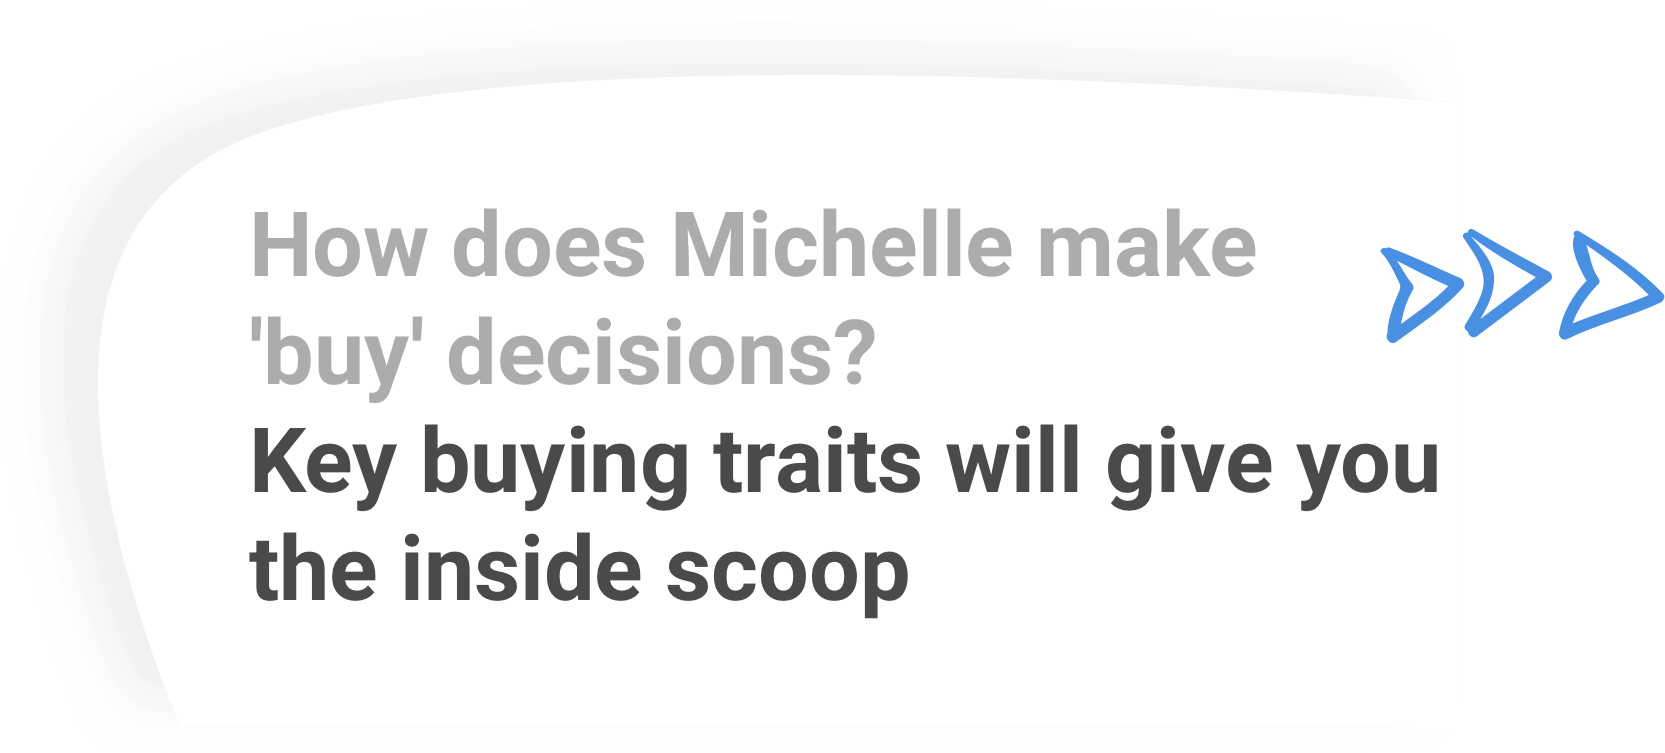 How does Michelle make 'buy' decisions? Key buying traits give you the inside scoop